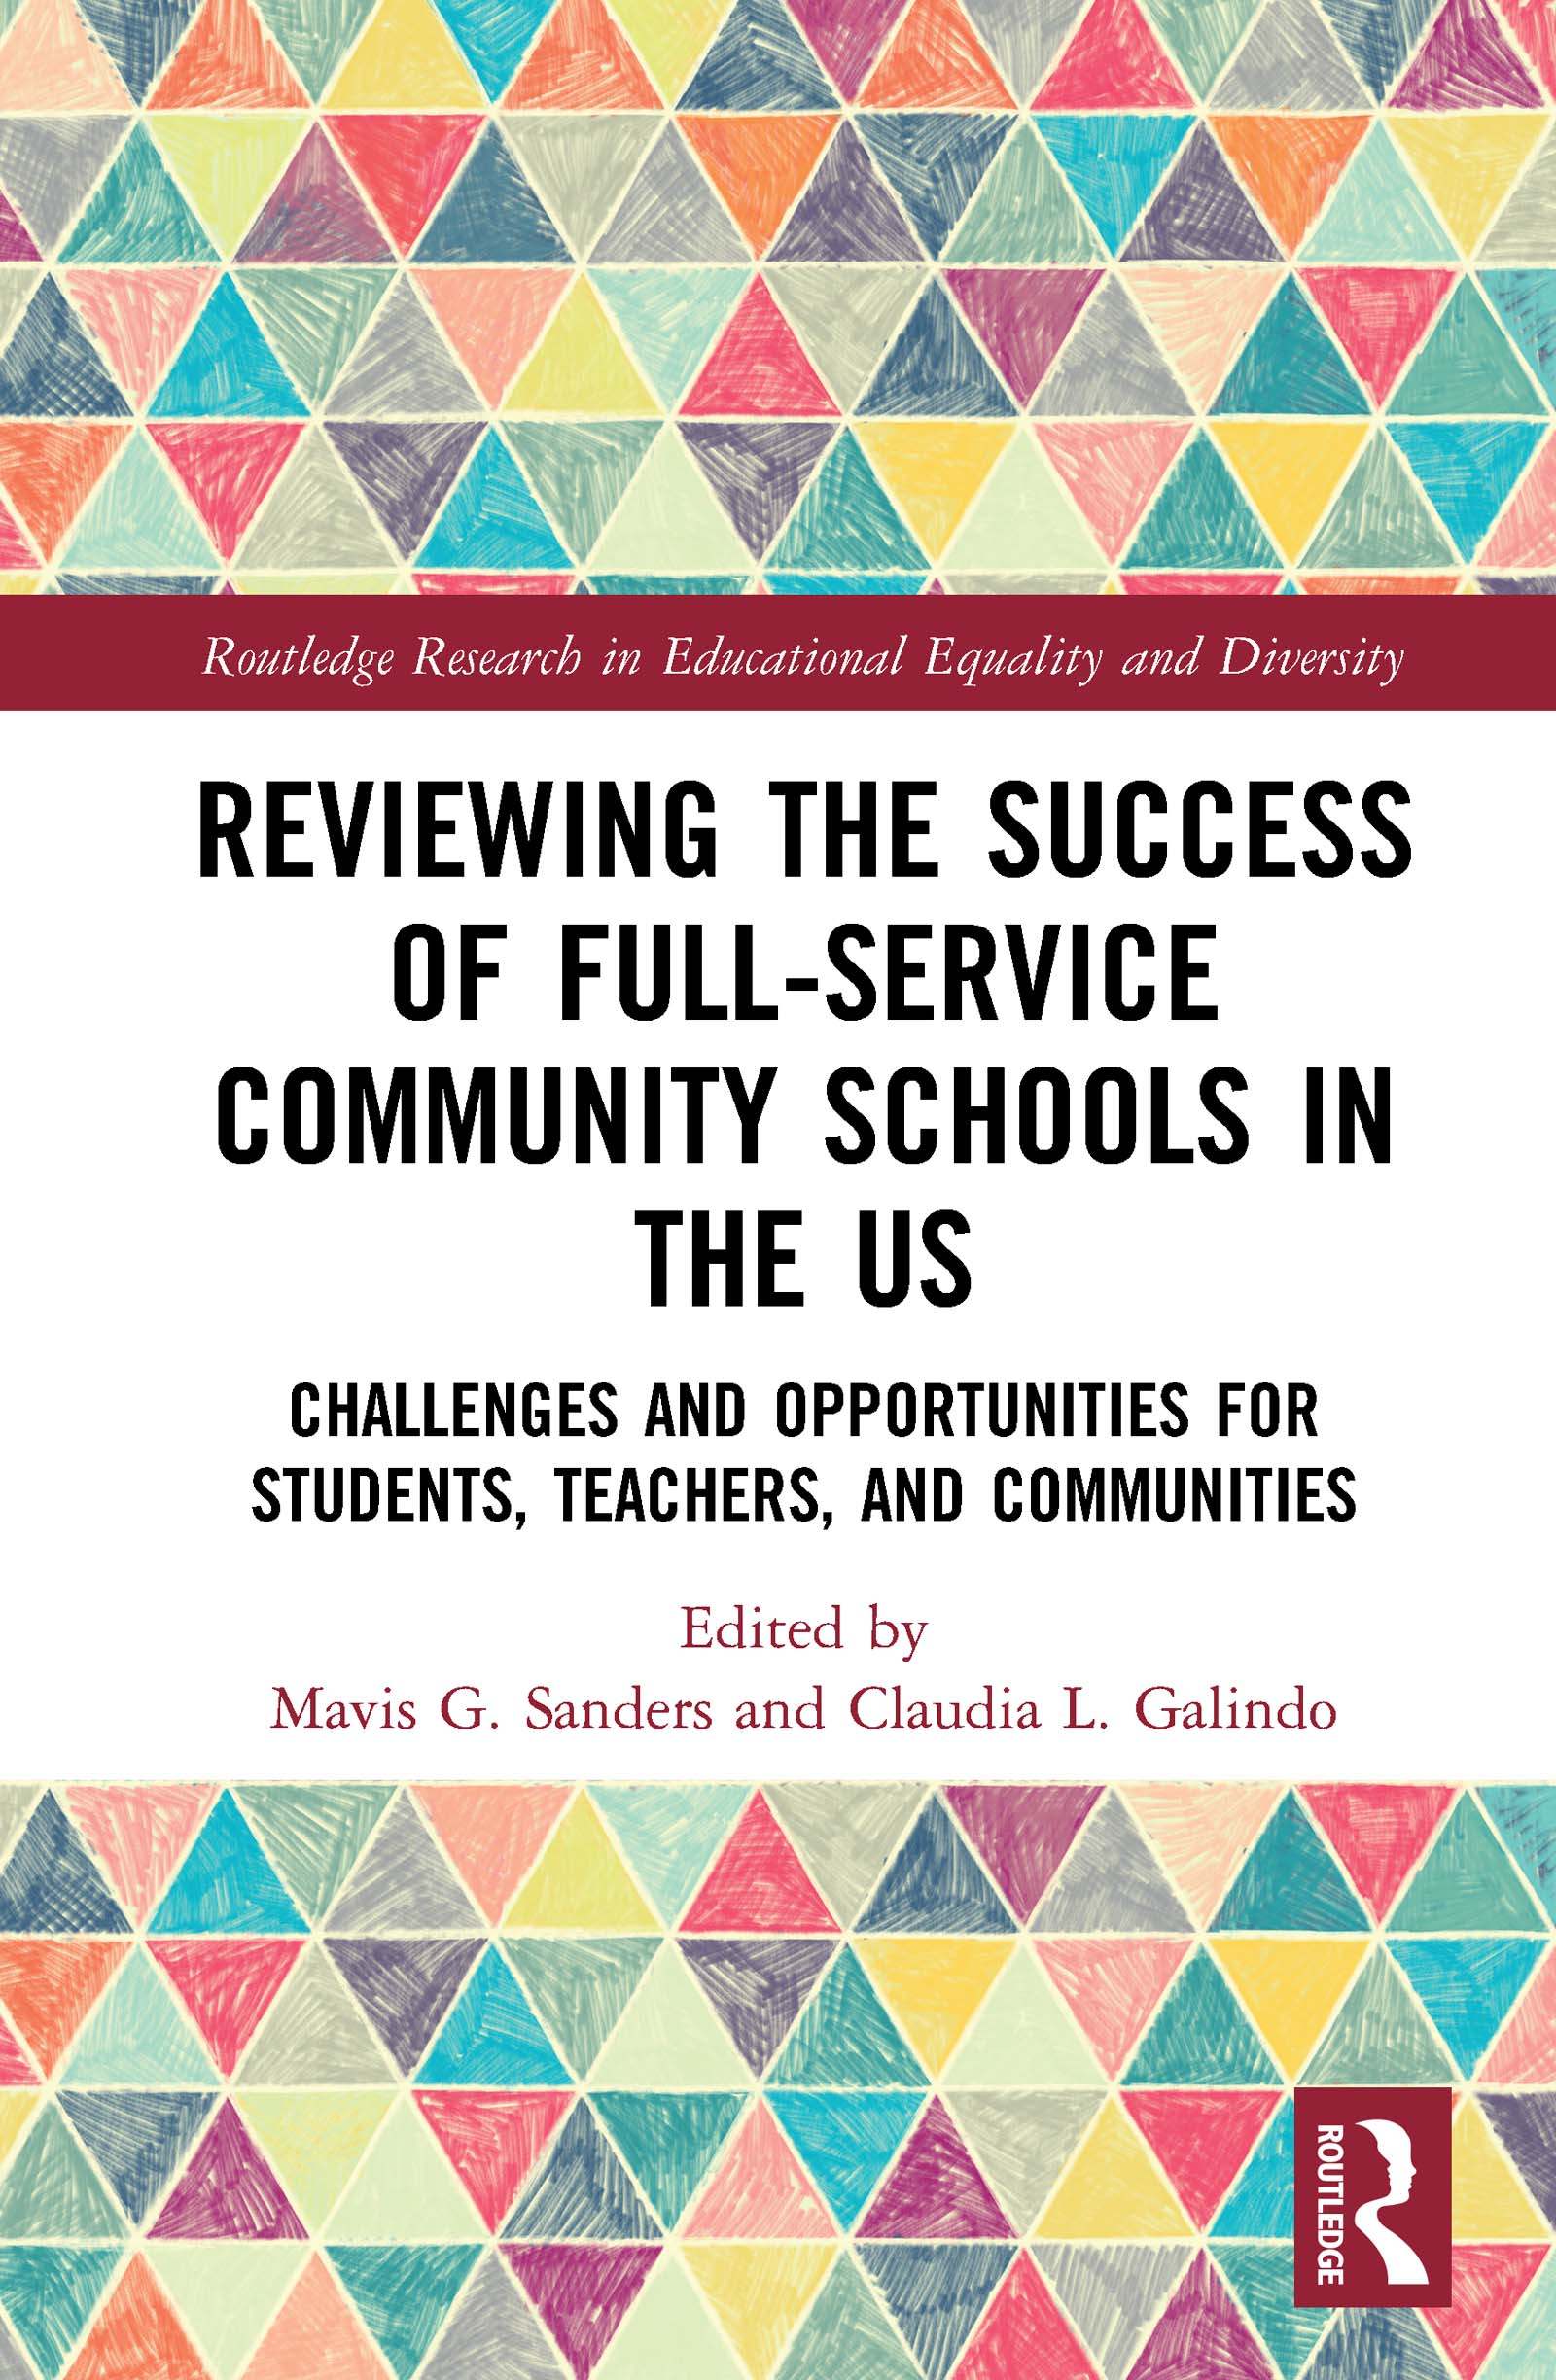 Reviewing the Success of Full-Service Community Schools in the US